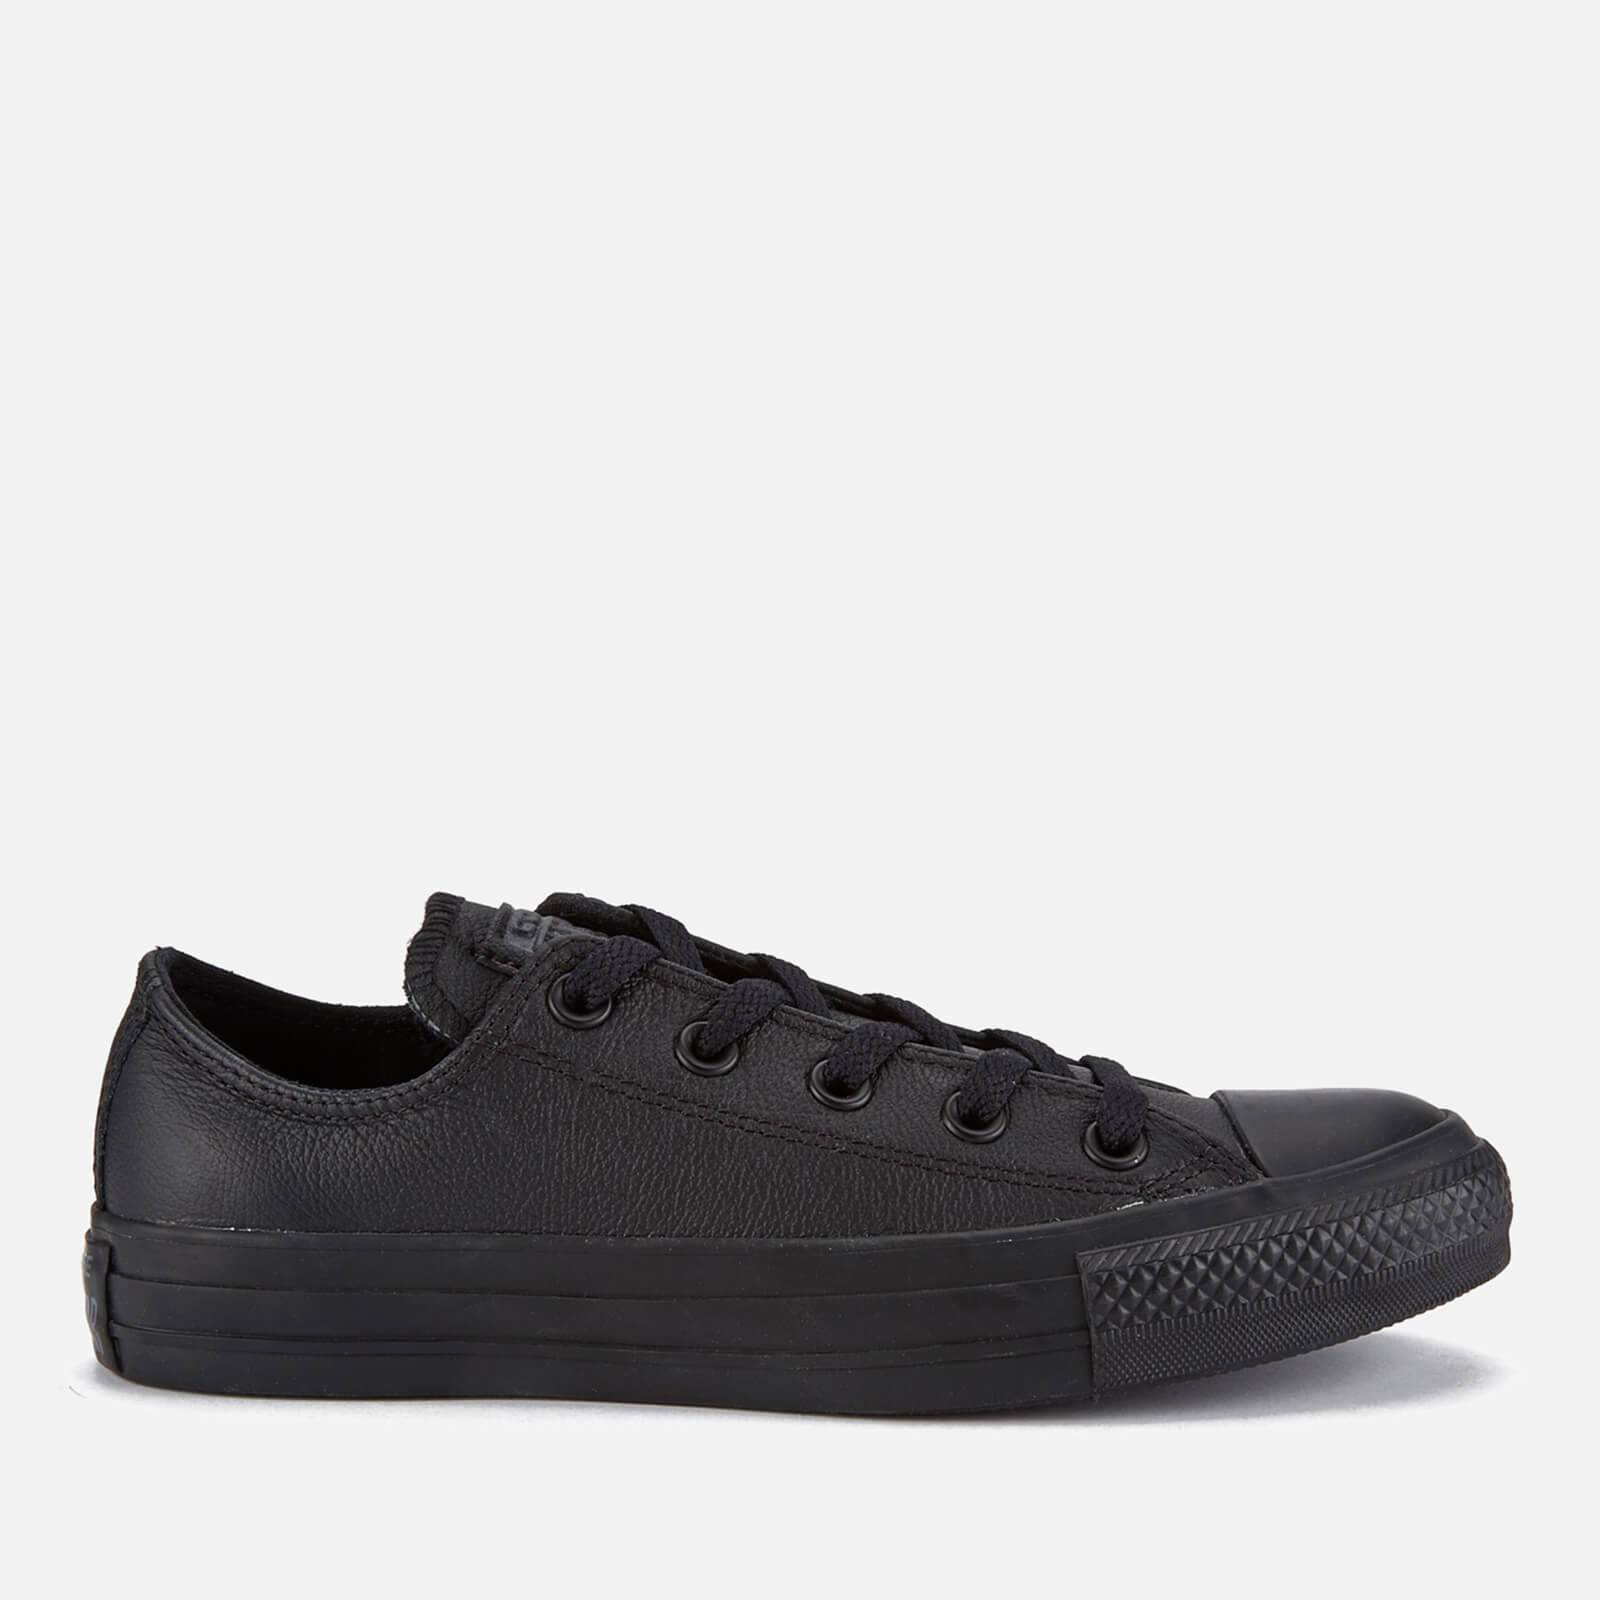 Converse Chuck Taylor All Star Ox Leather Trainers - Black Monochrome - UK 3